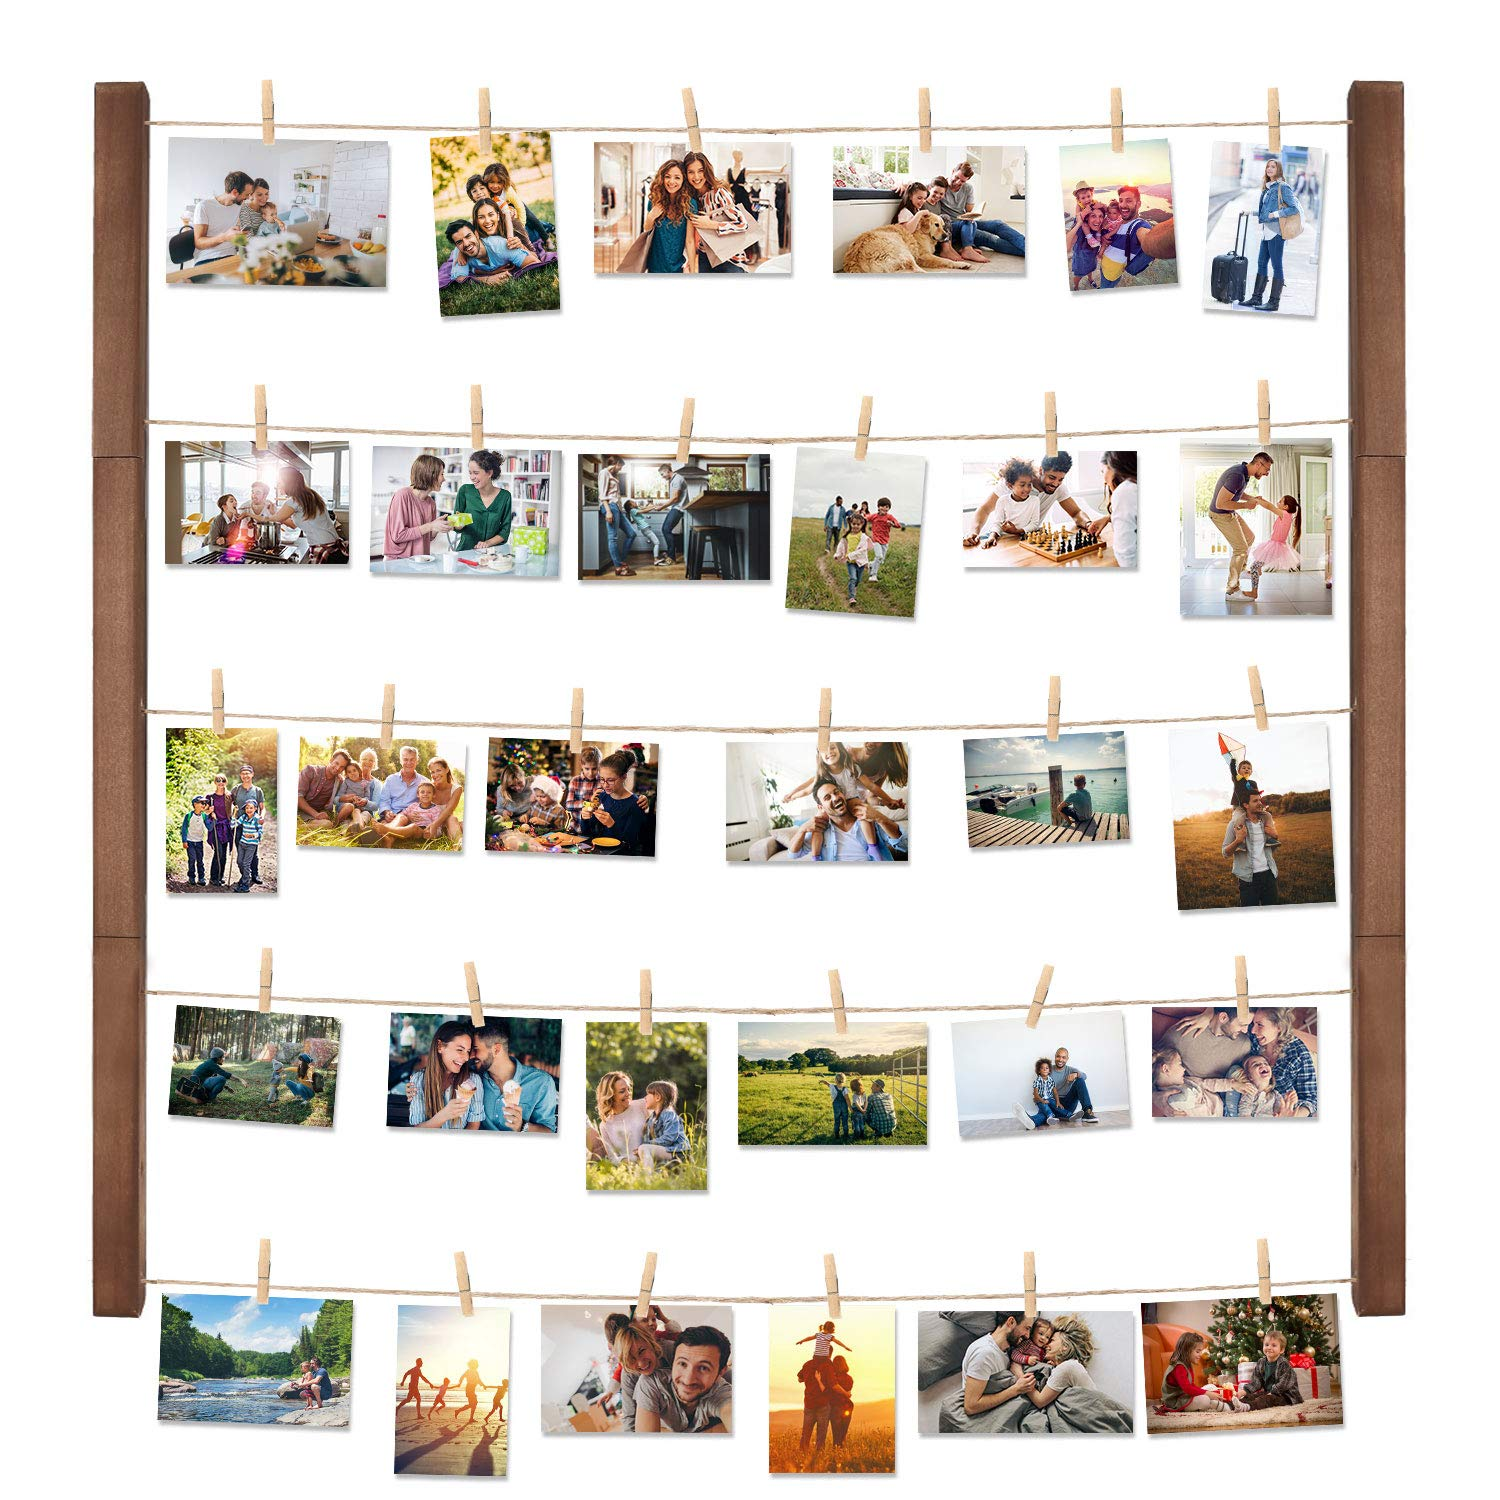 Halcent Wall Picture Photo Frame Collage for Picture Display, Wood Decor Wall Photo Display Frame with 30 Clips Multi Rustic Picture Frame 26 x 29 Inch by Halcent